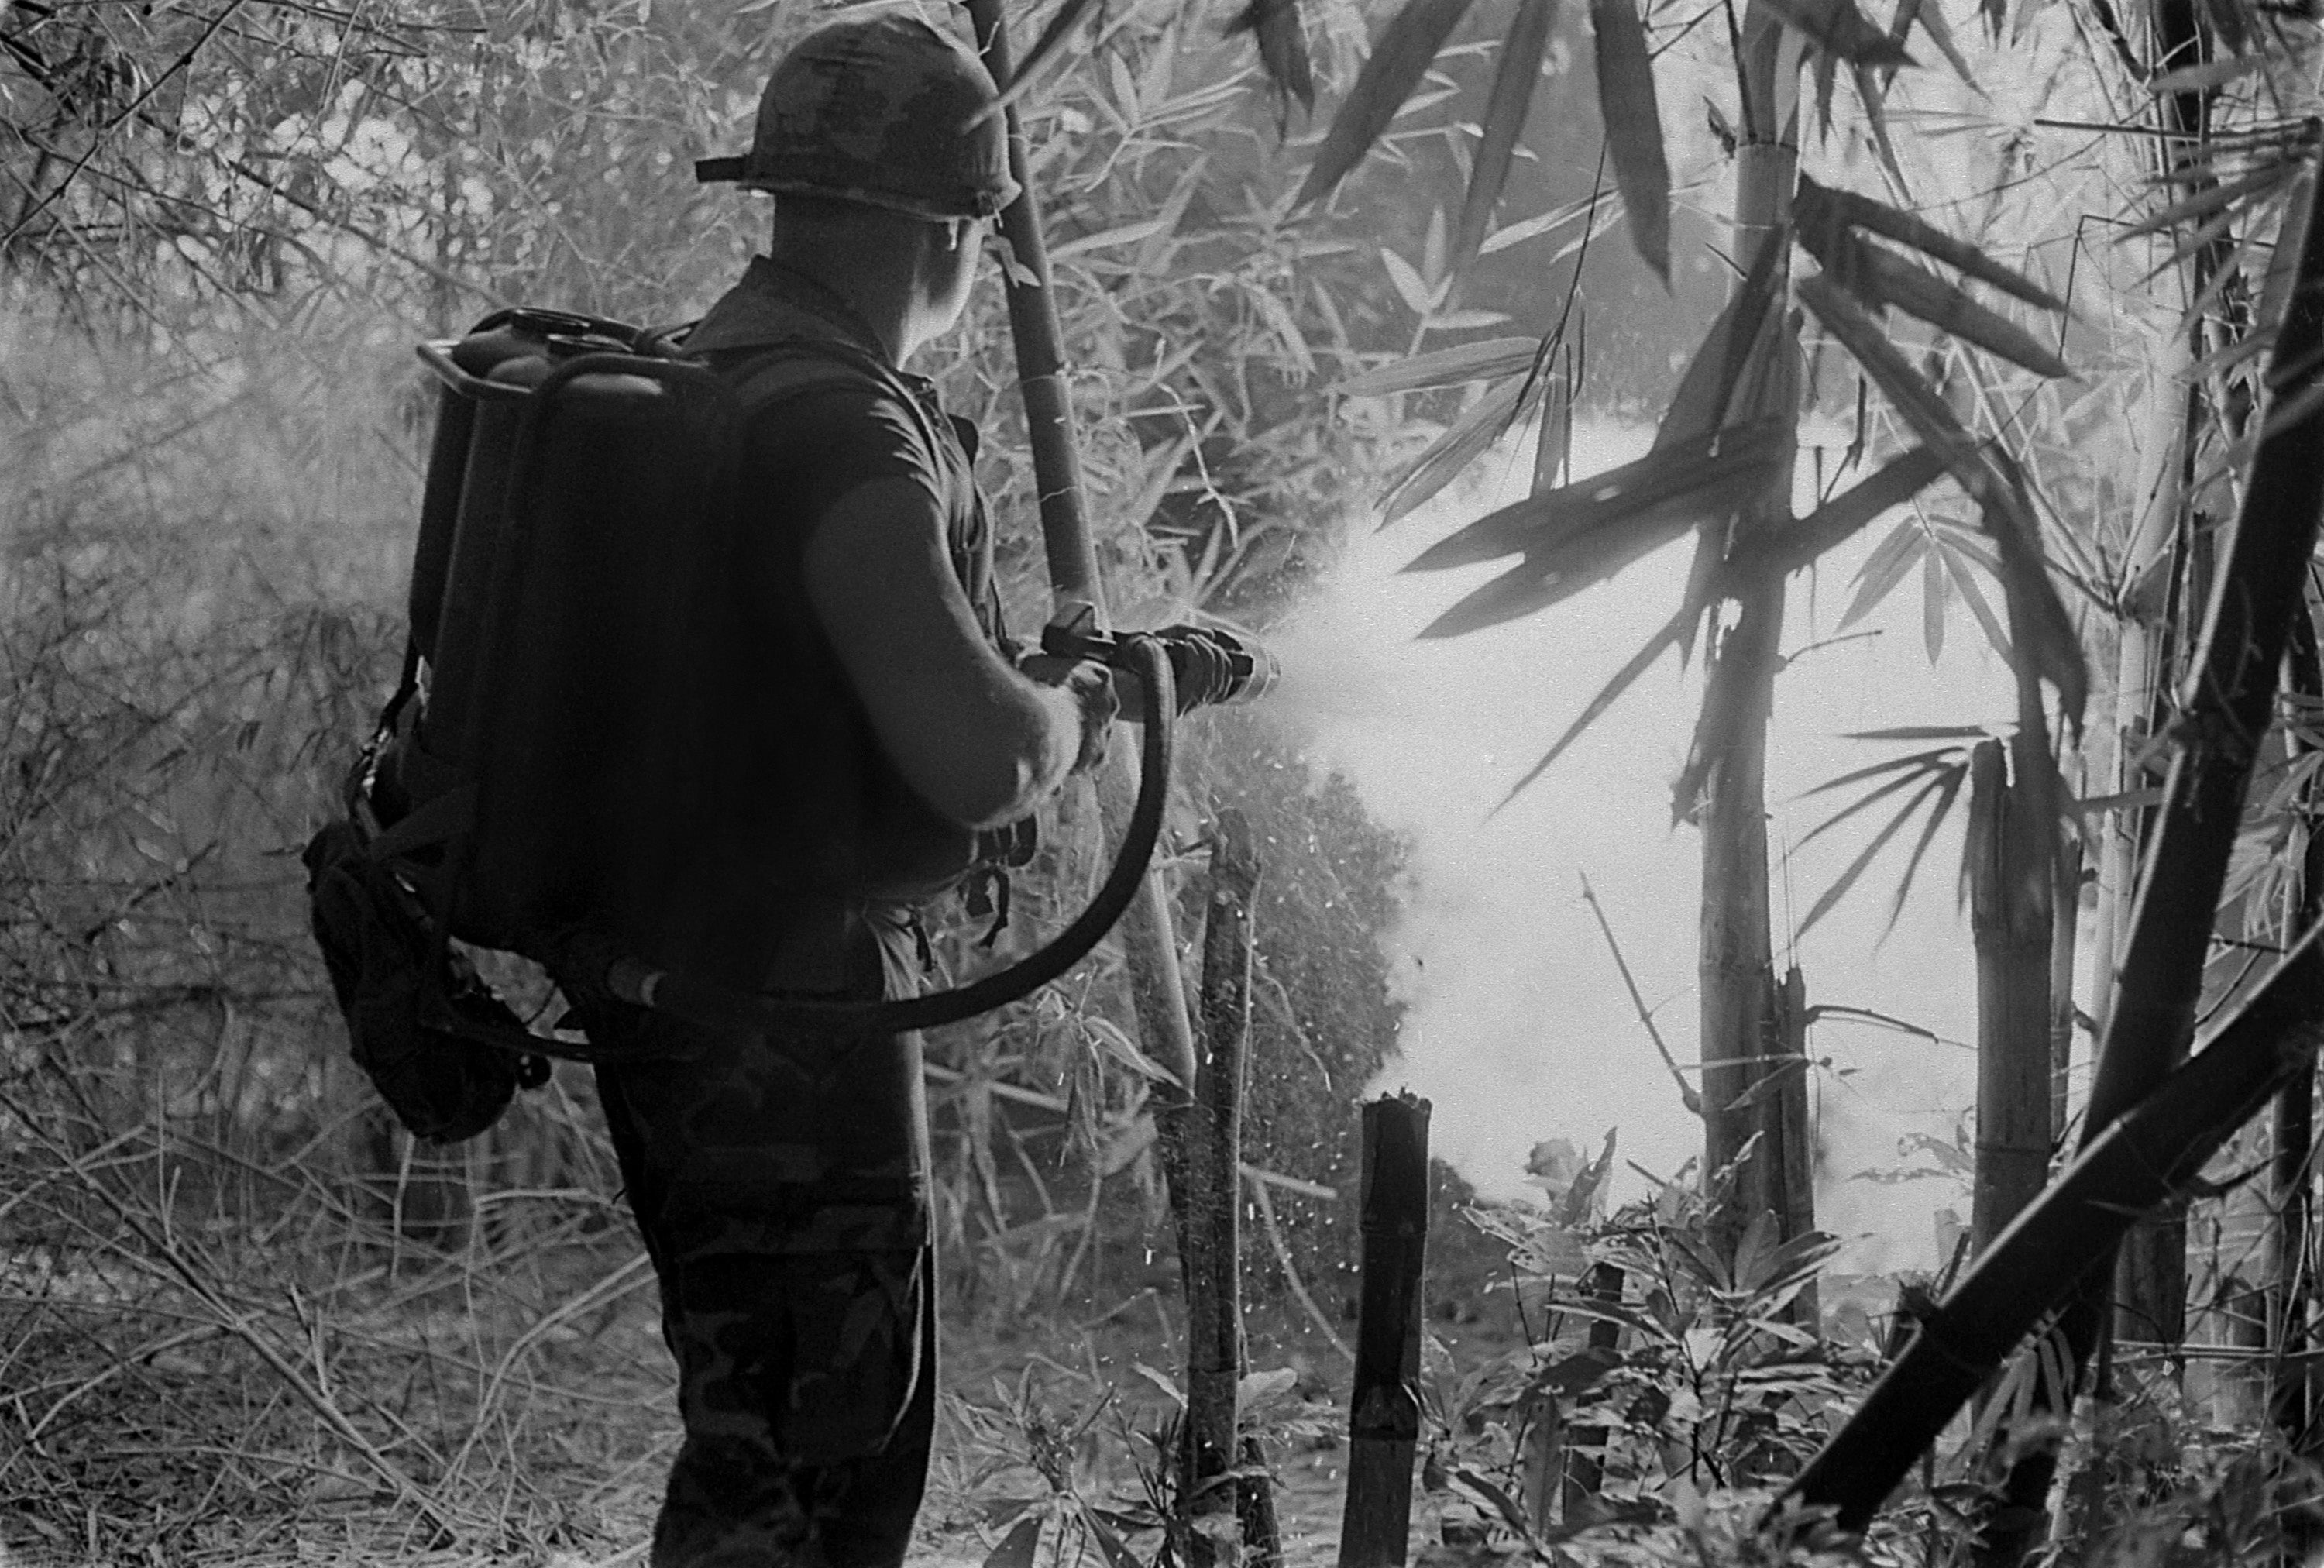 Remembering the Vietnam War, 42 Years After US Troops Withdrew